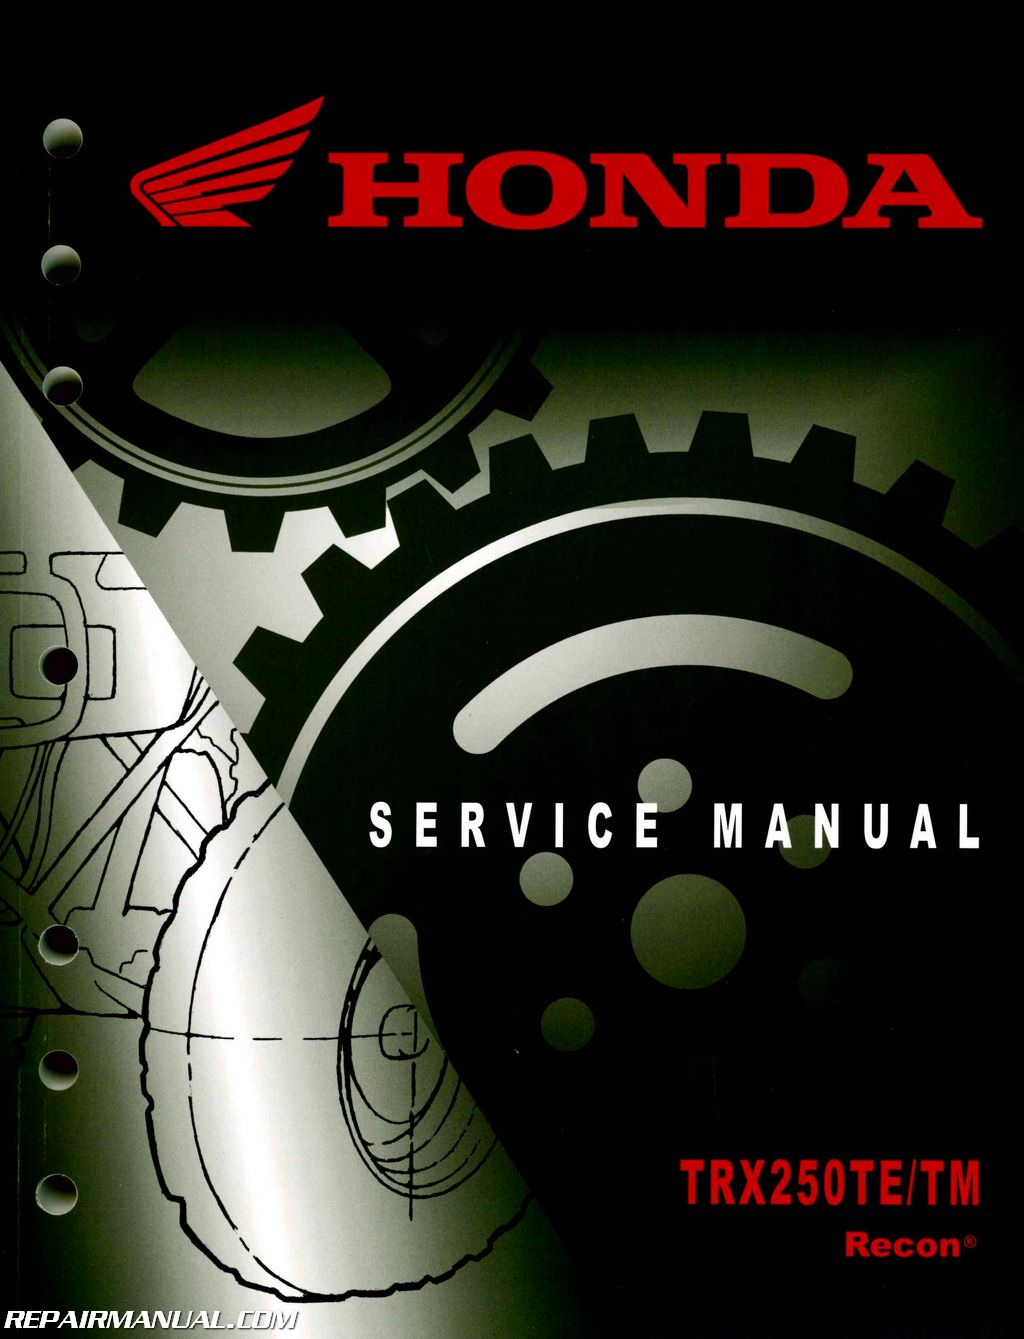 2005 2017 honda trx250te tm recon service manual repair manuals 2005 2014 honda trx250te tm recon service manual